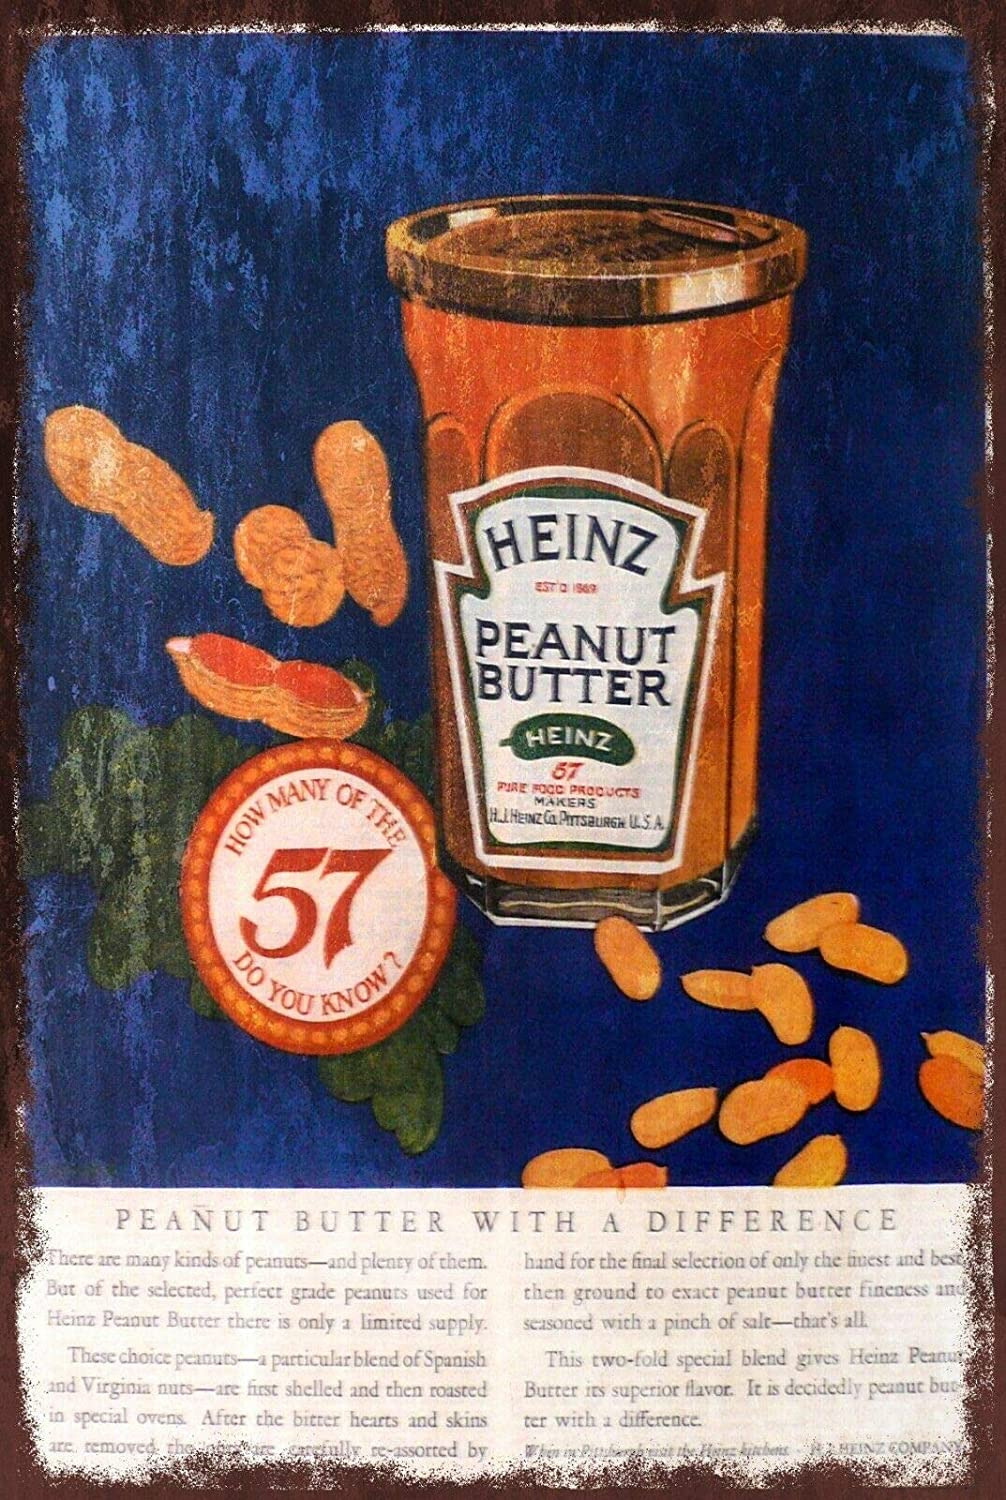 TNND Heinz Peanut Butter Advert Retro Style Metal Wall Sign Plaque, Food Kitchen Cafe Aluminum Metal Sign 8X12 Inches